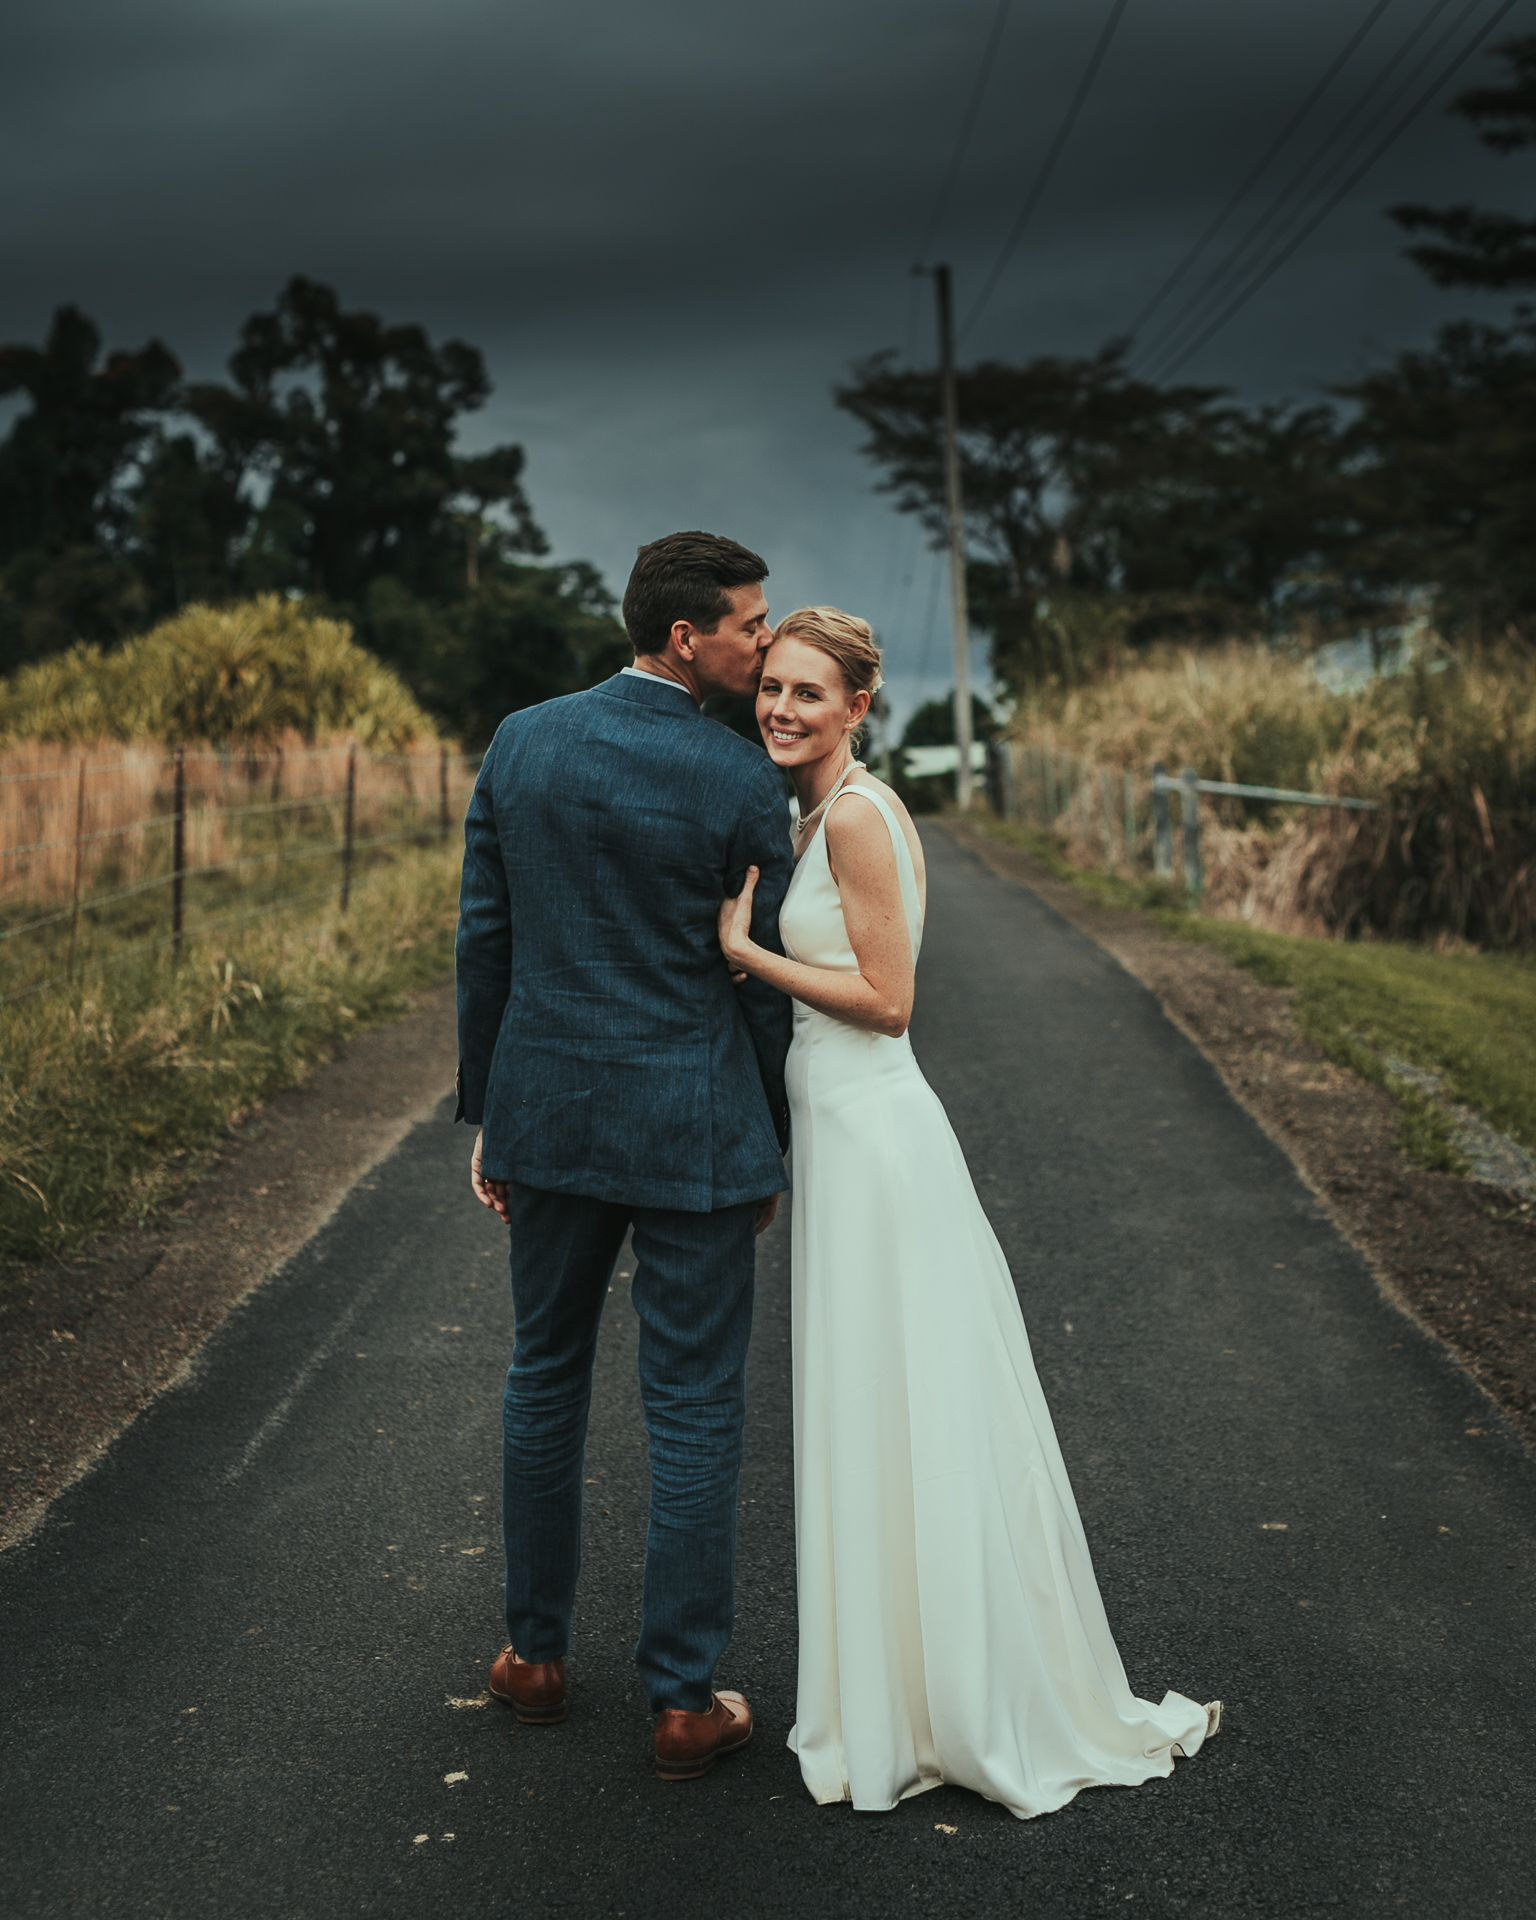 affordable wedding photographers in los angeles%0A Hilo Hawaii Destination Wedding  photography by Joel and Justyna Bedford   destination wedding photographers based